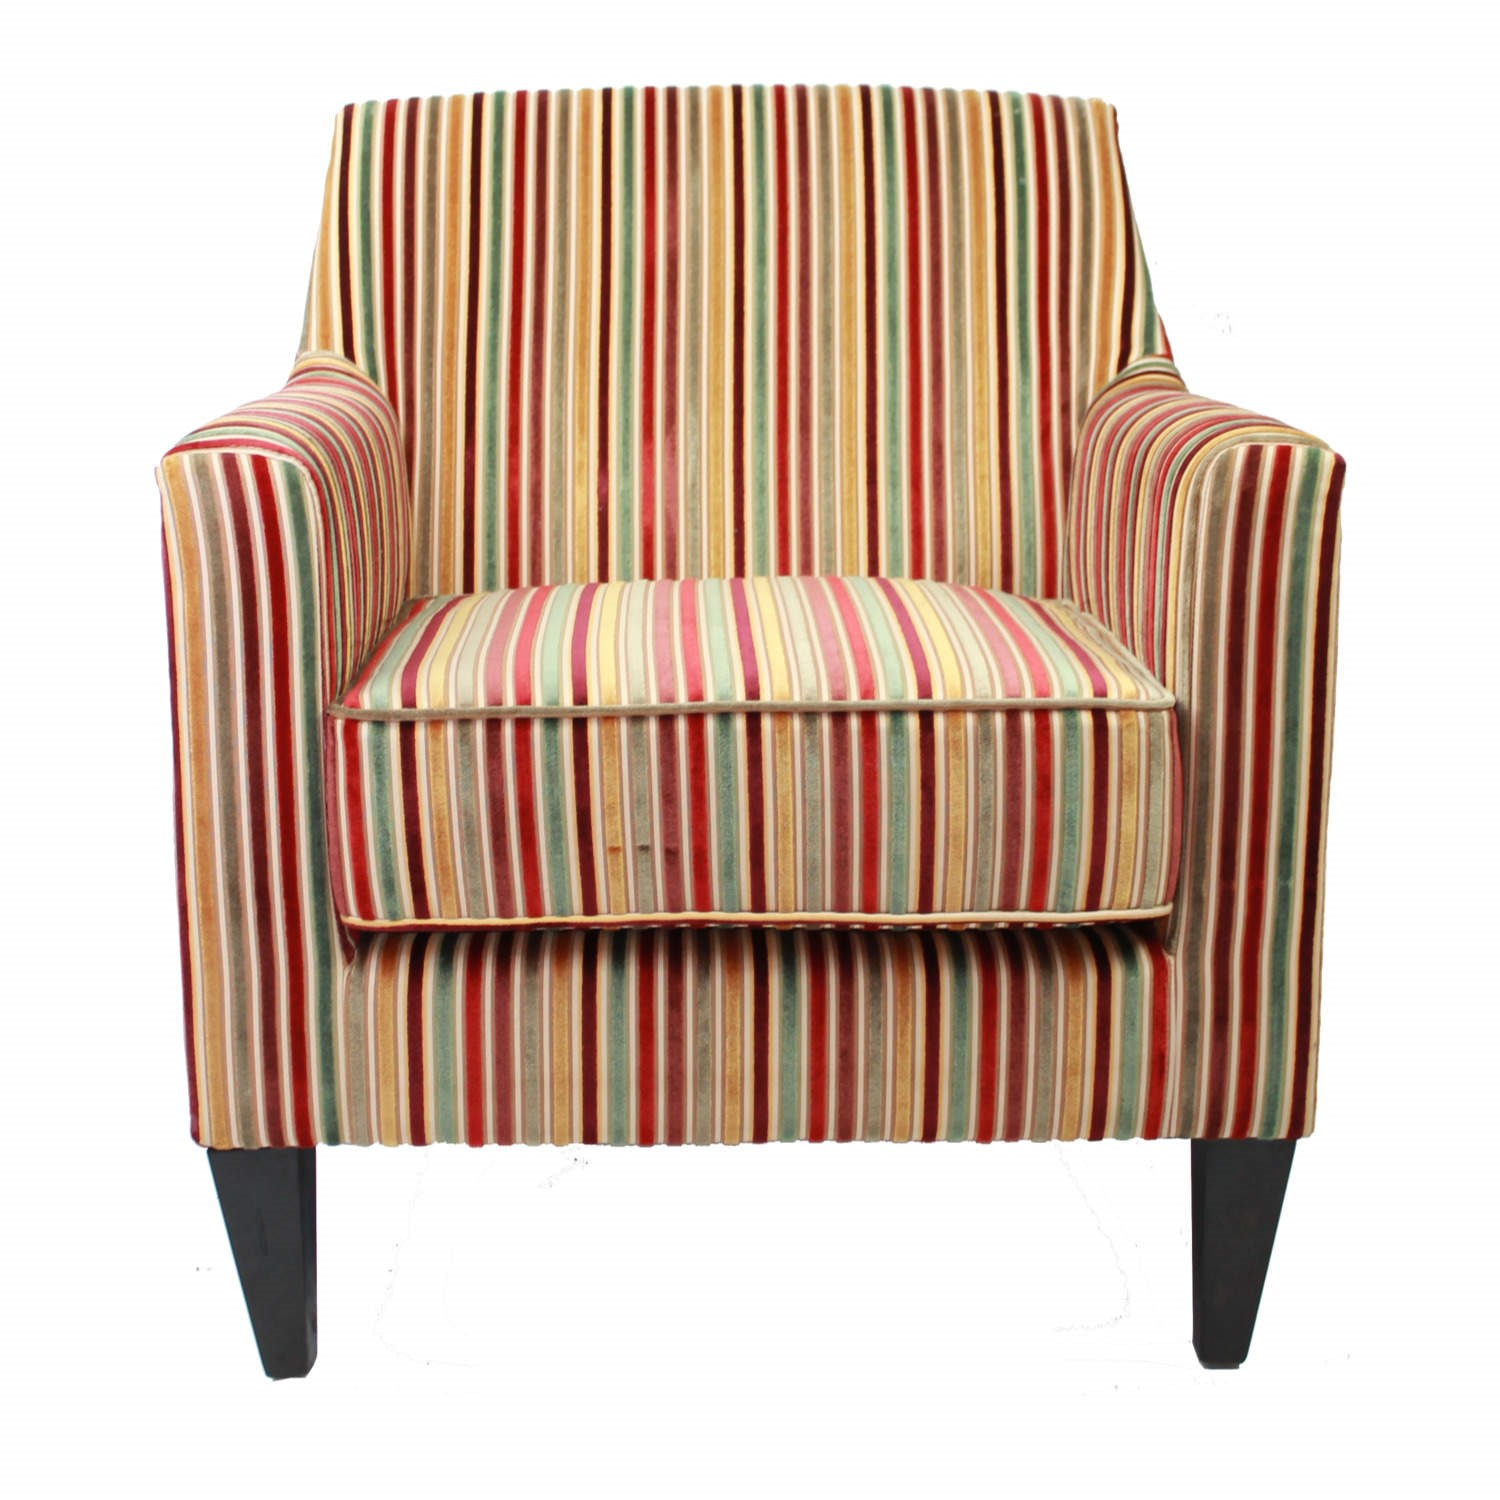 Bloomsbury Fabric Accent Chair In Candy Stripe